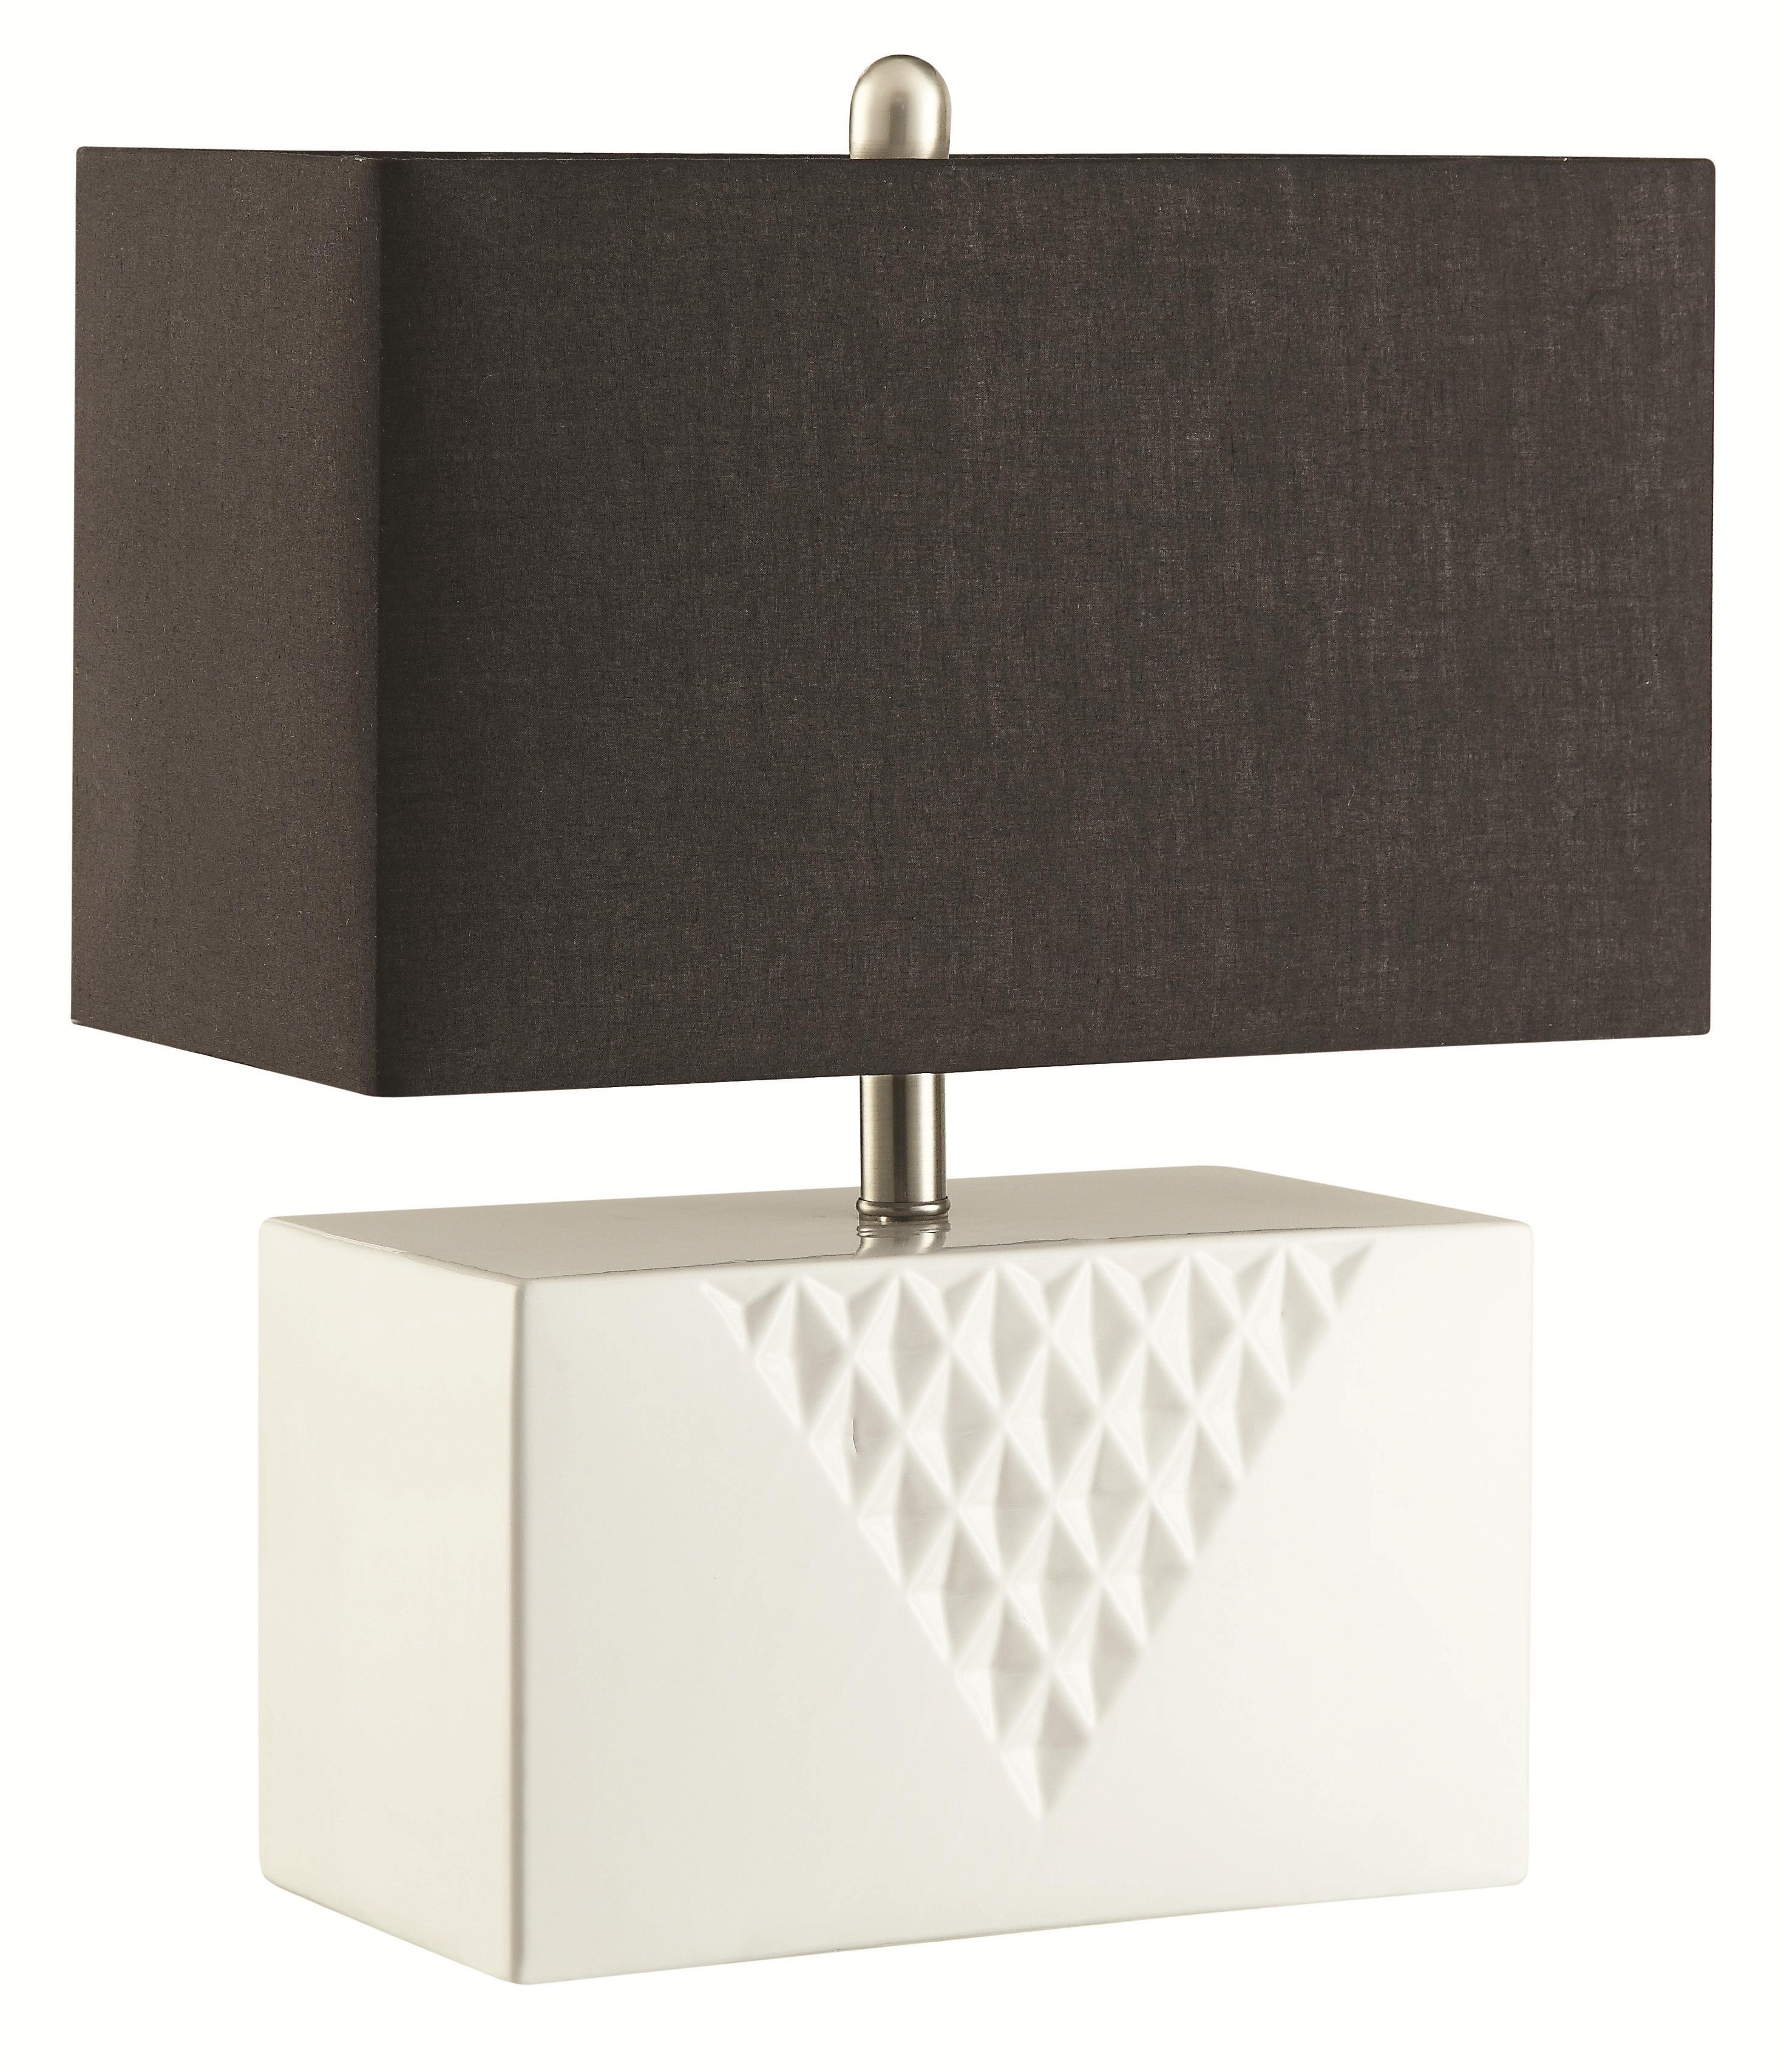 Coaster Table Lamps Table Lamp - Item Number: 901522